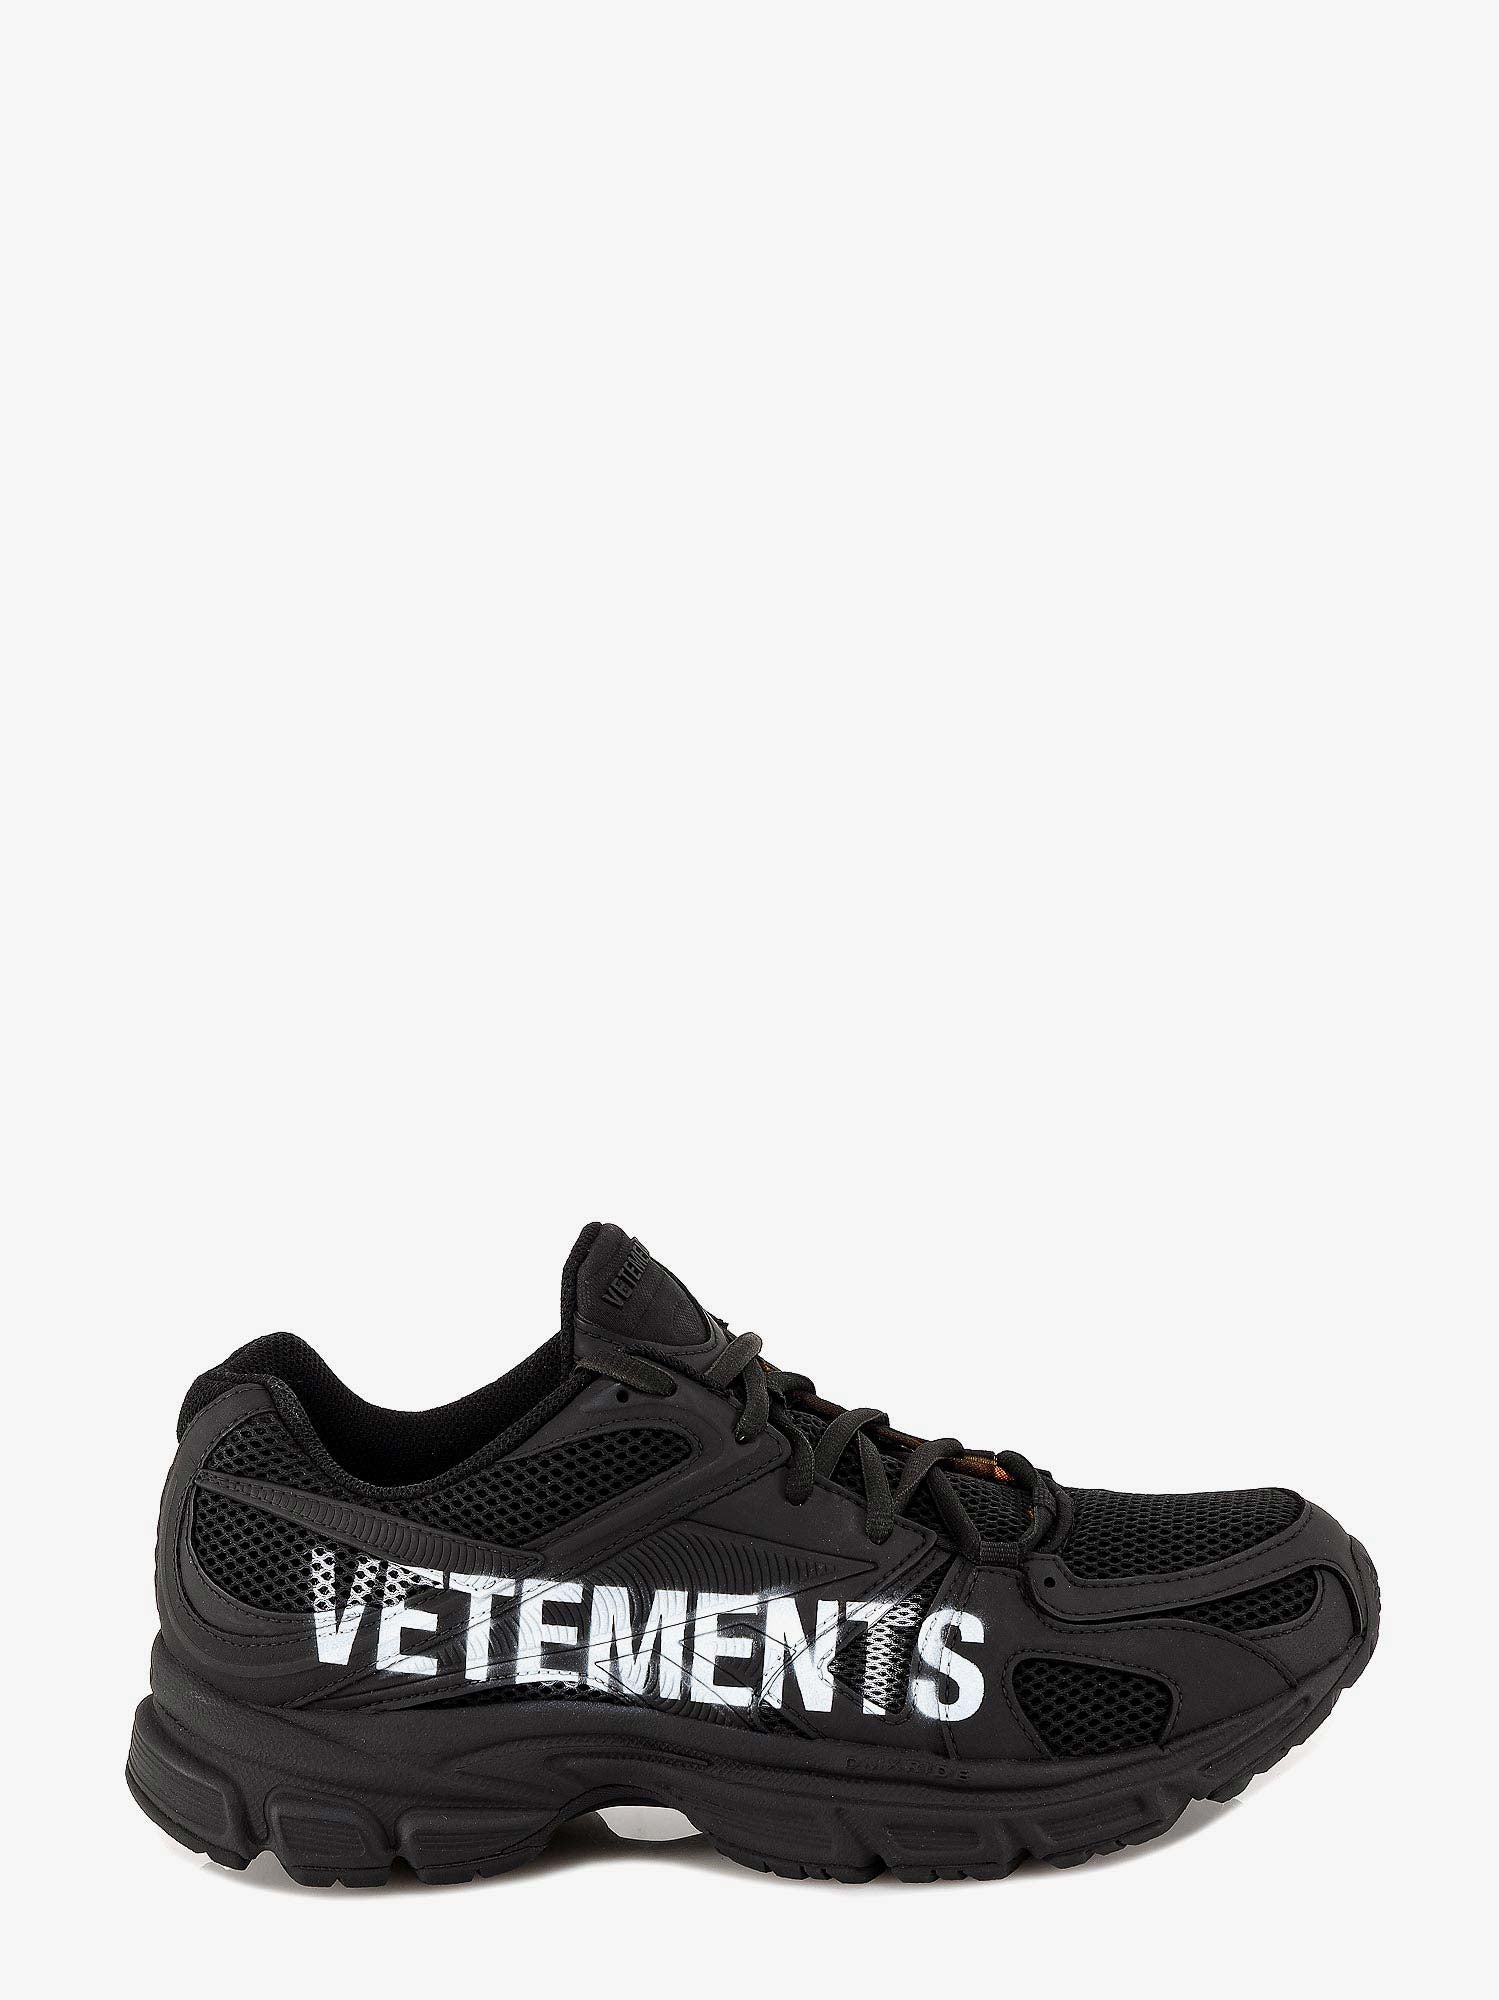 SPIKE RUNNER VETEMENTS X REEBOK